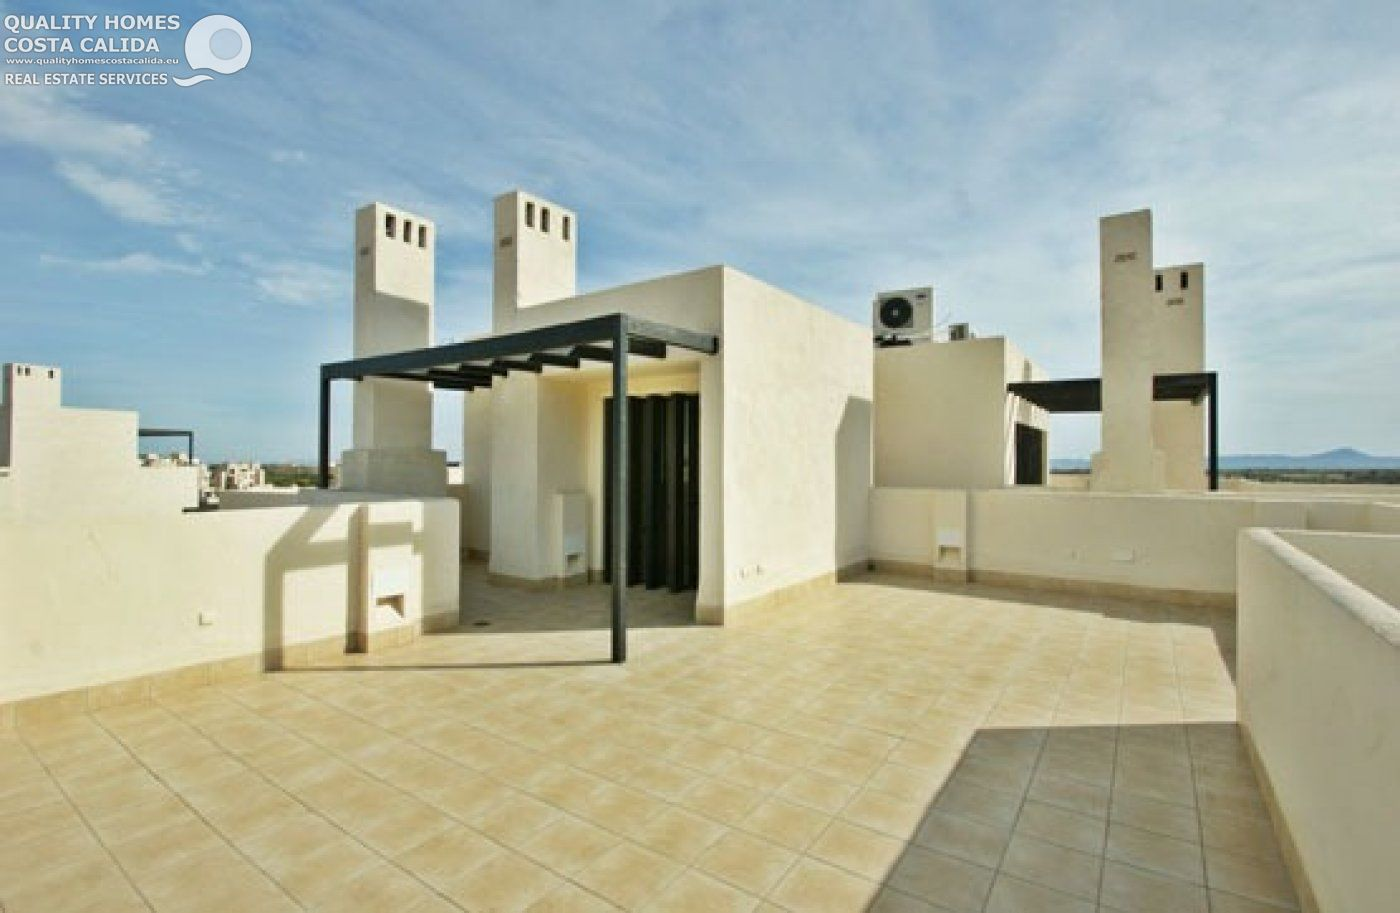 Gallery Image 14 of Maybe the best investment in the Murcia Region